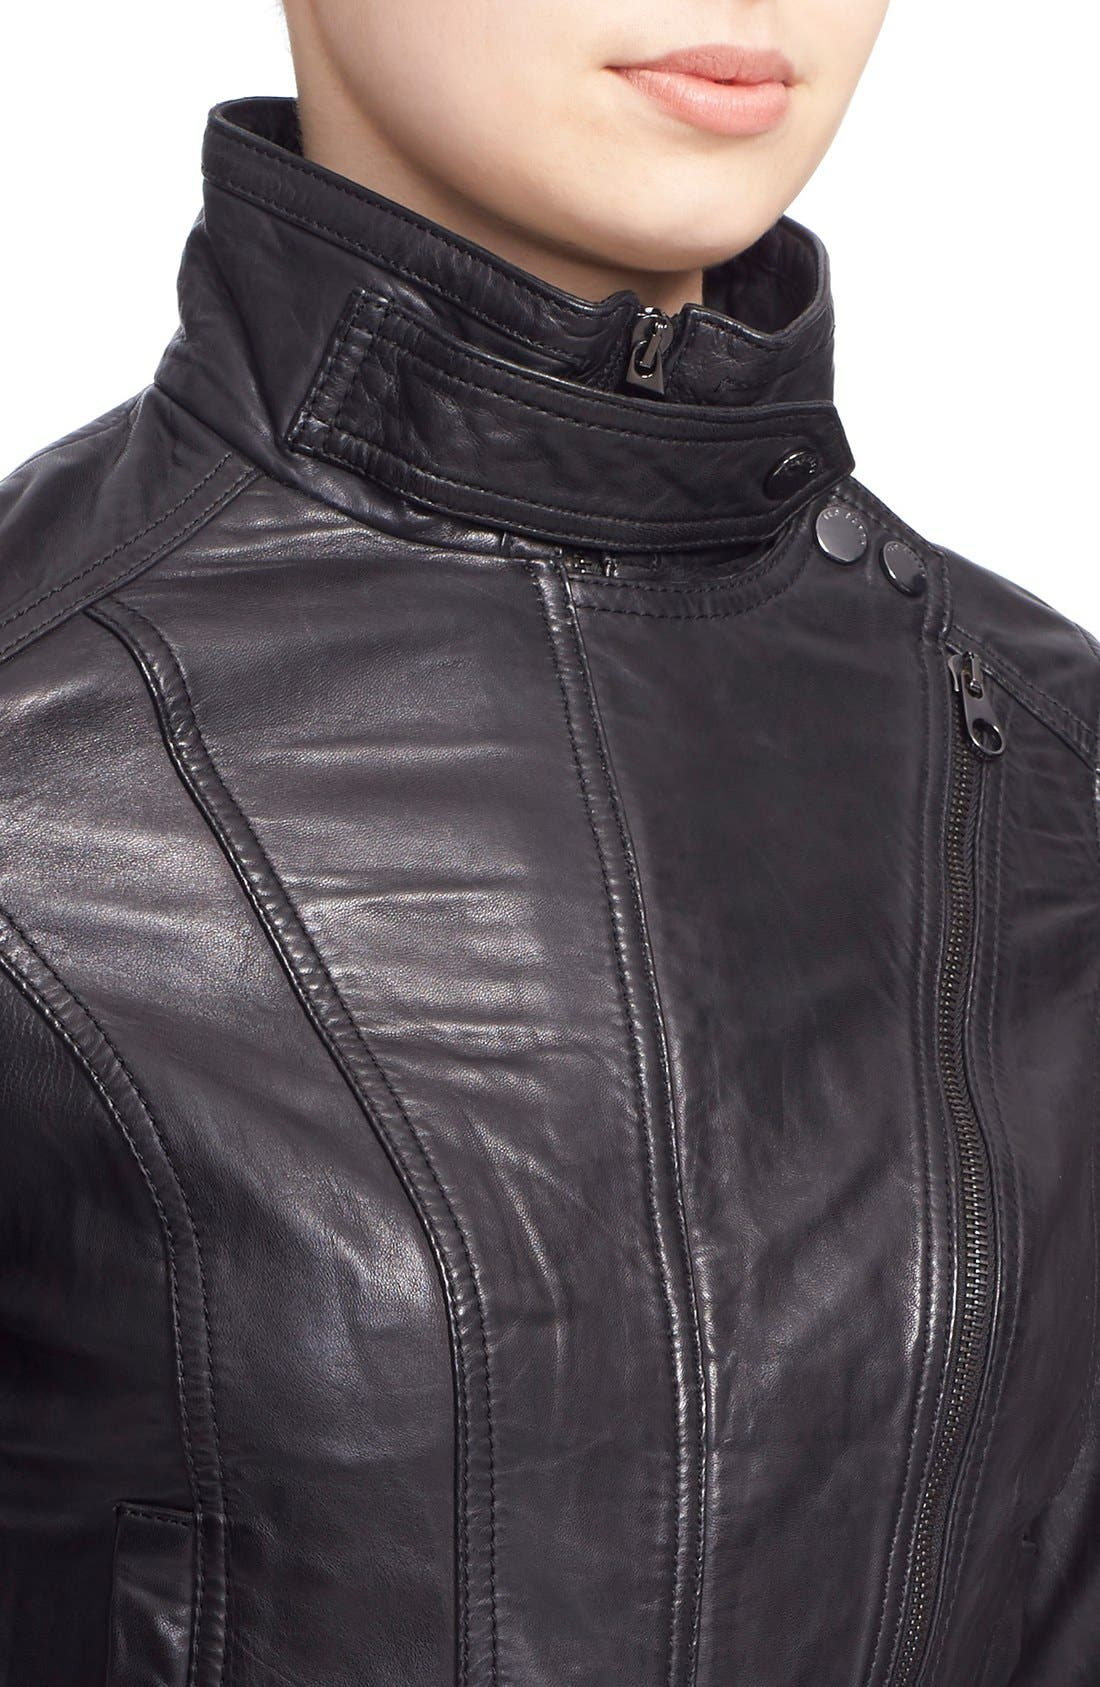 'Roark' Stand Collar Leather Jacket,                             Alternate thumbnail 4, color,                             001